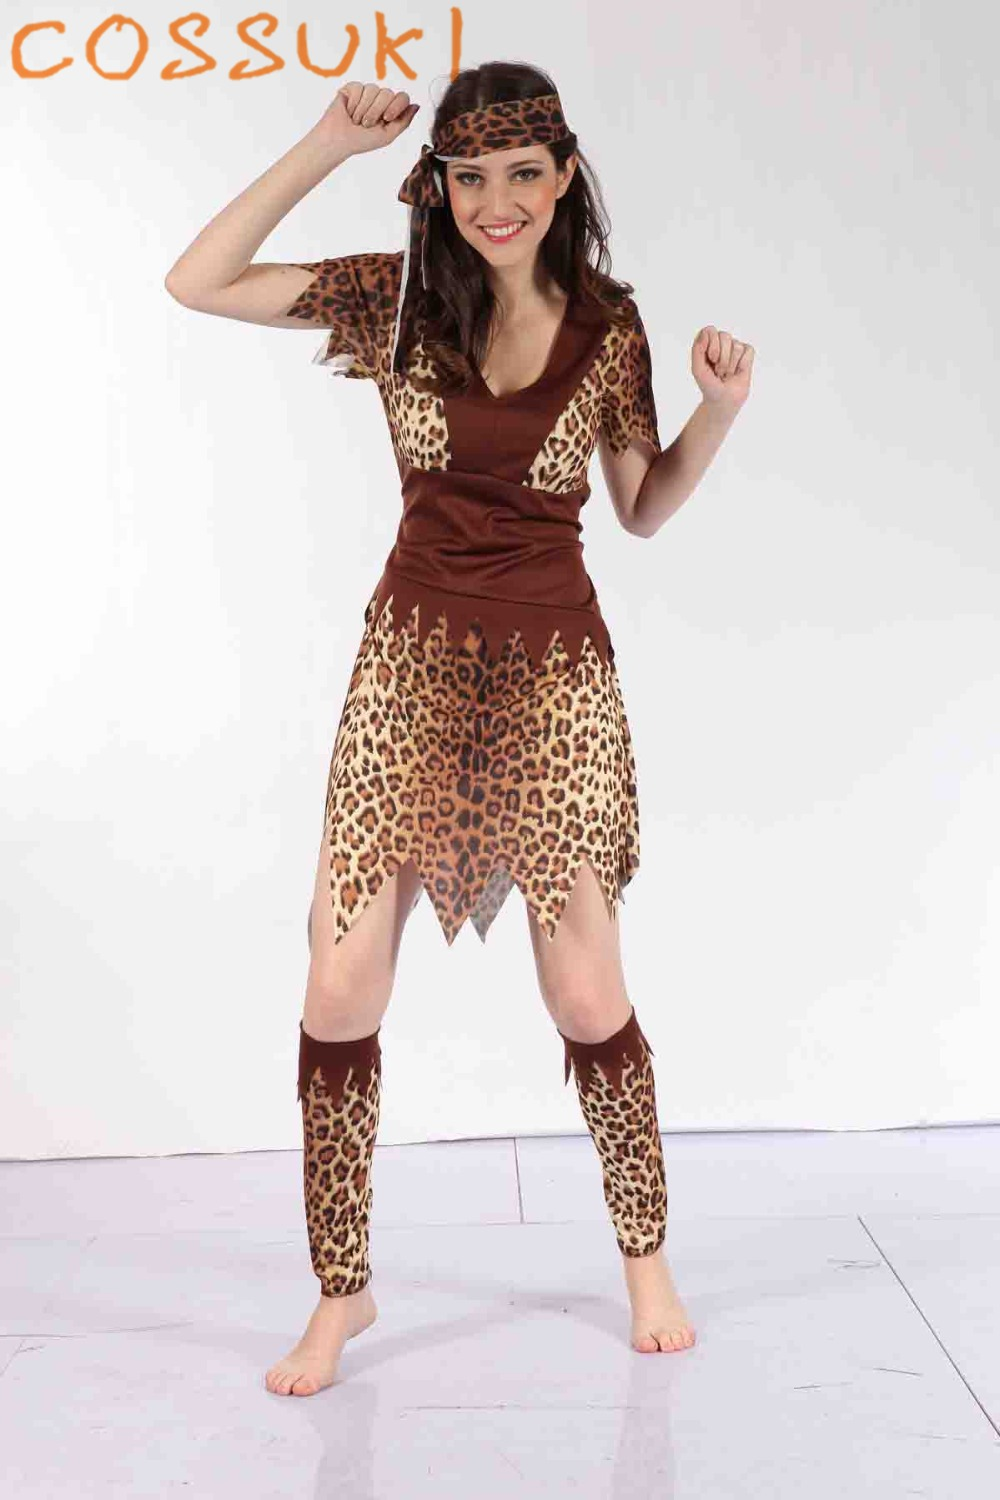 Halloween Adult Women Sexy Leopard Print Primitive Society Savage Cosplay Costume For Stage Performance Or Masquerade